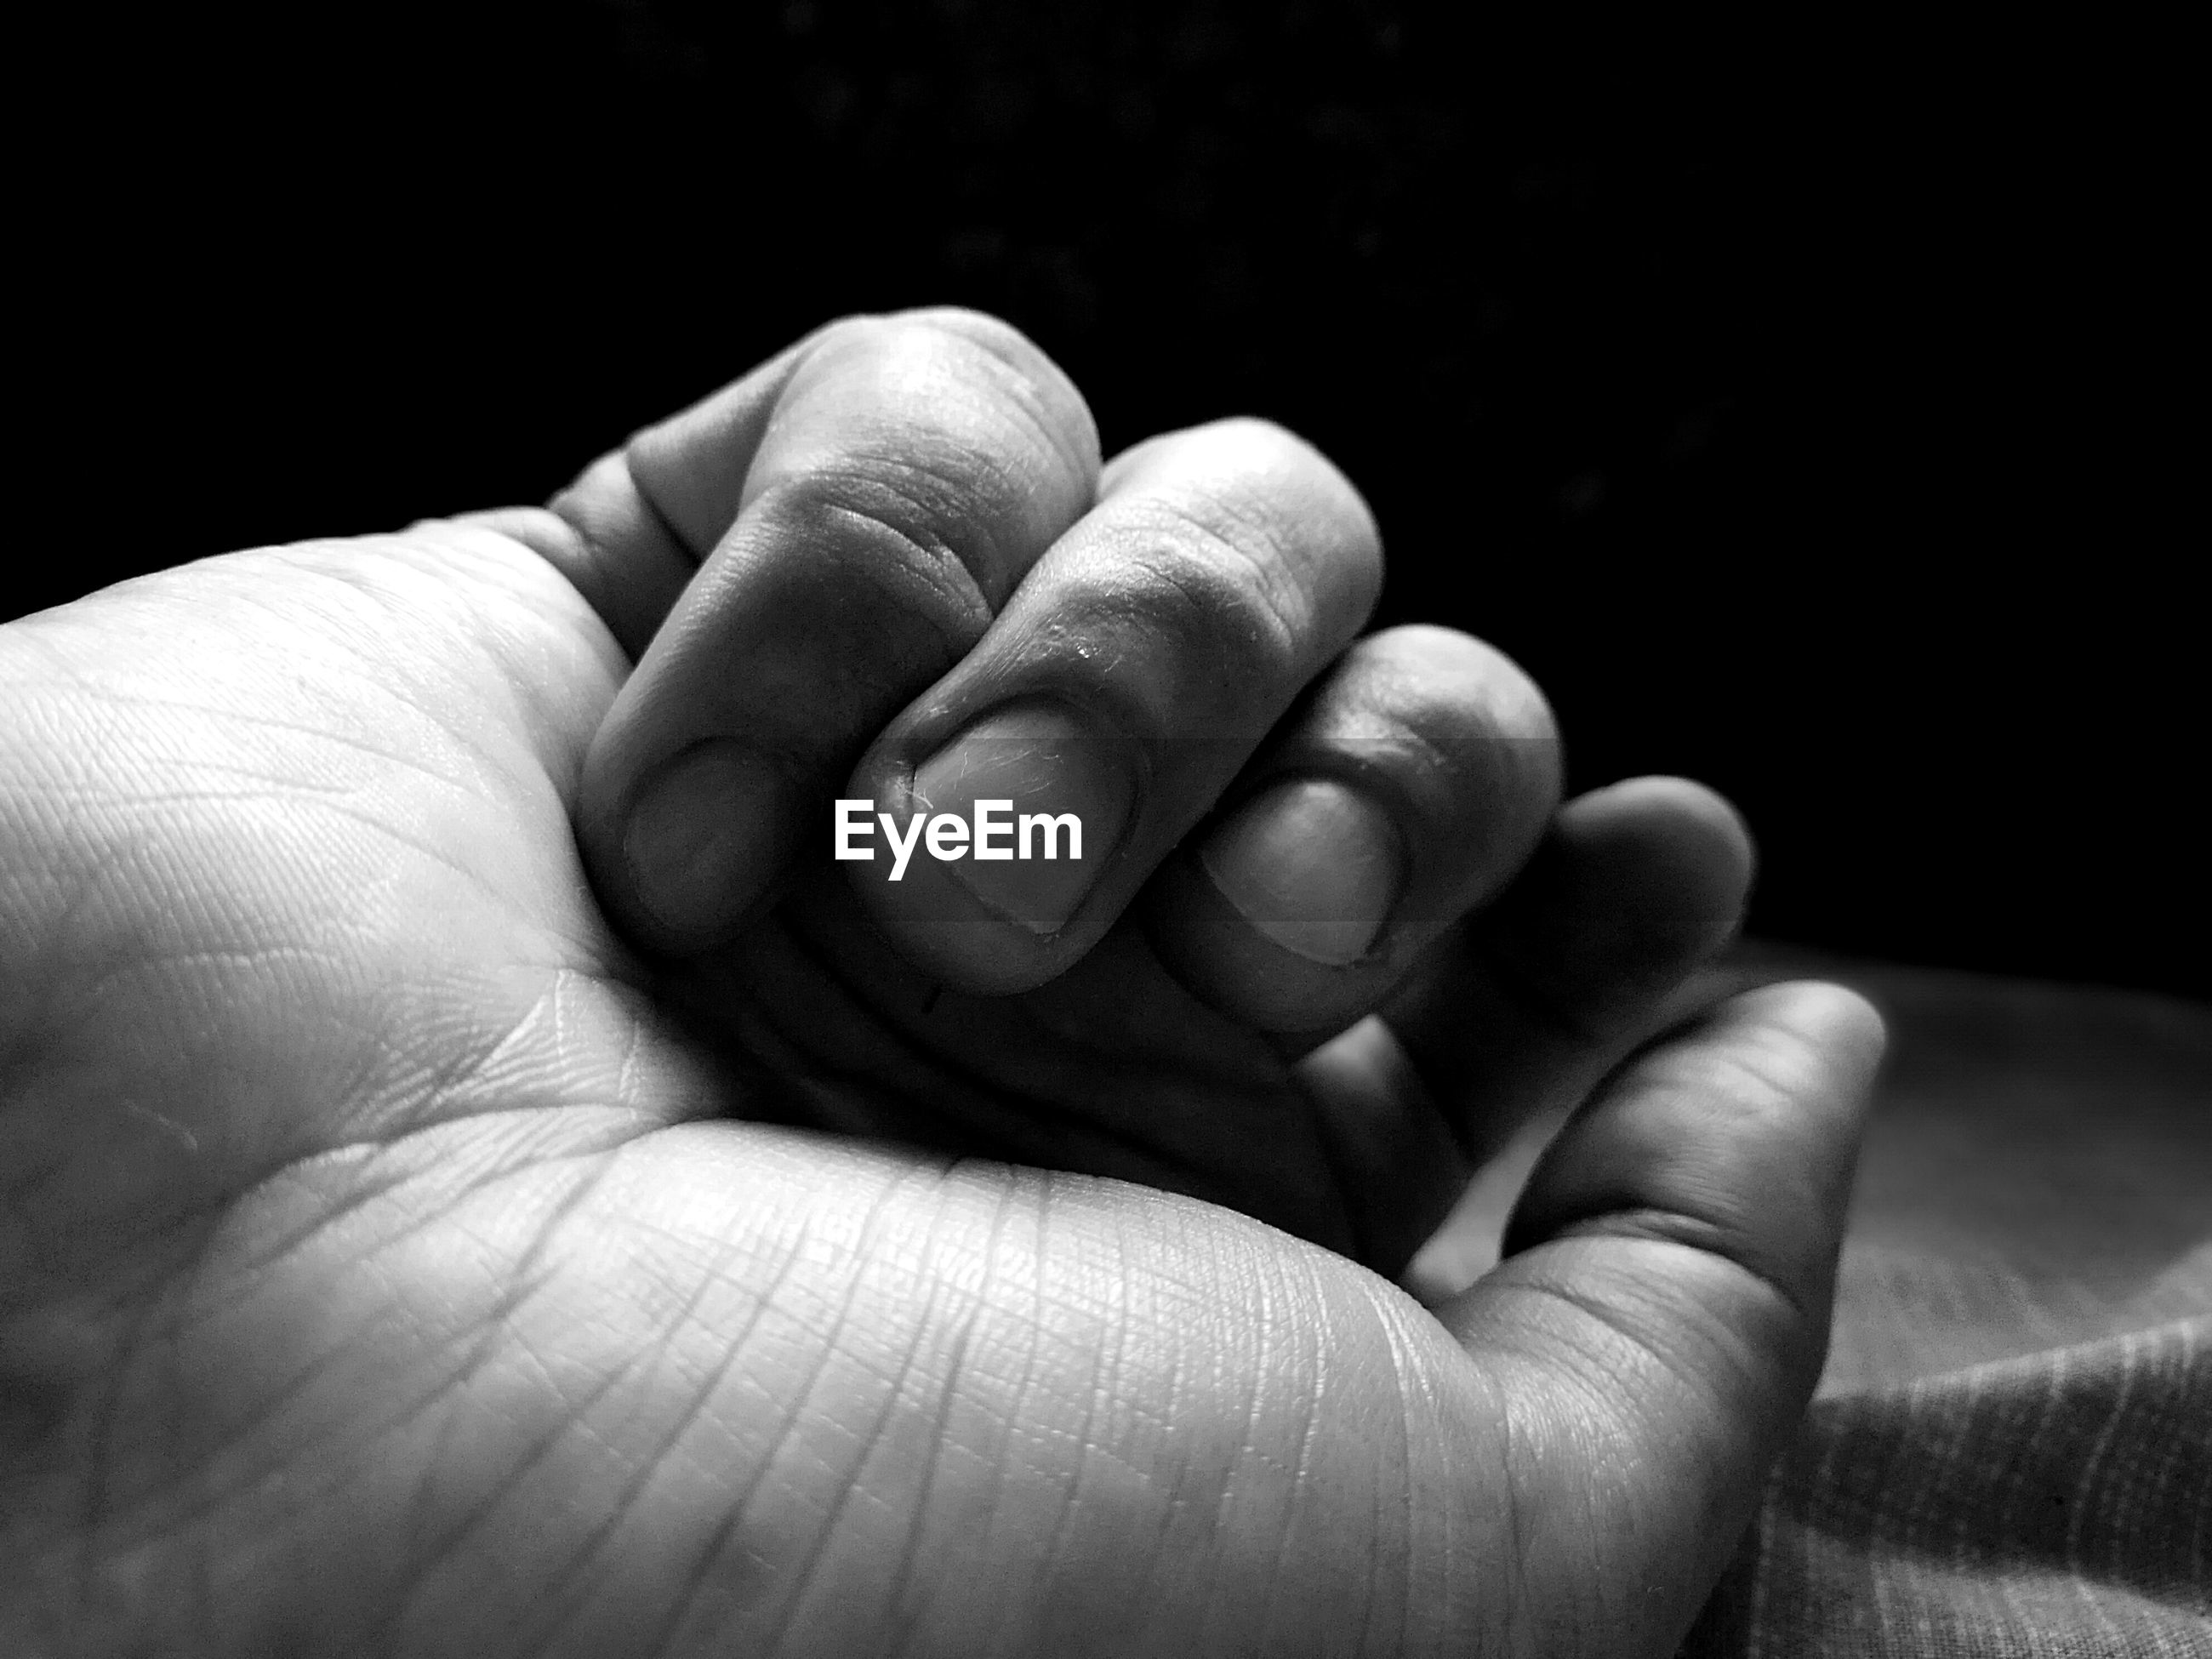 Cropped image of hand